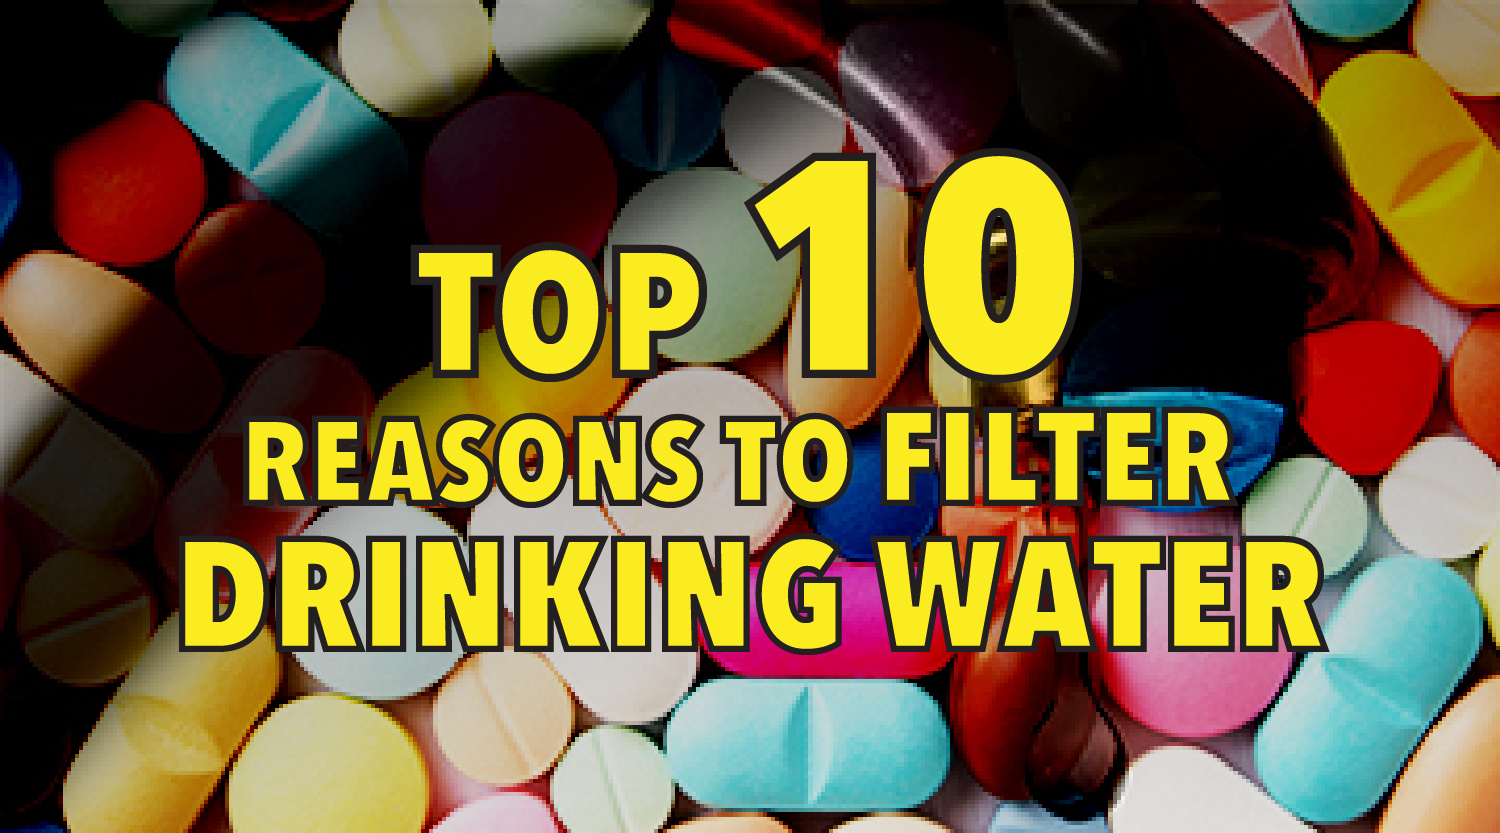 Top 10 reasons to filter drinking water